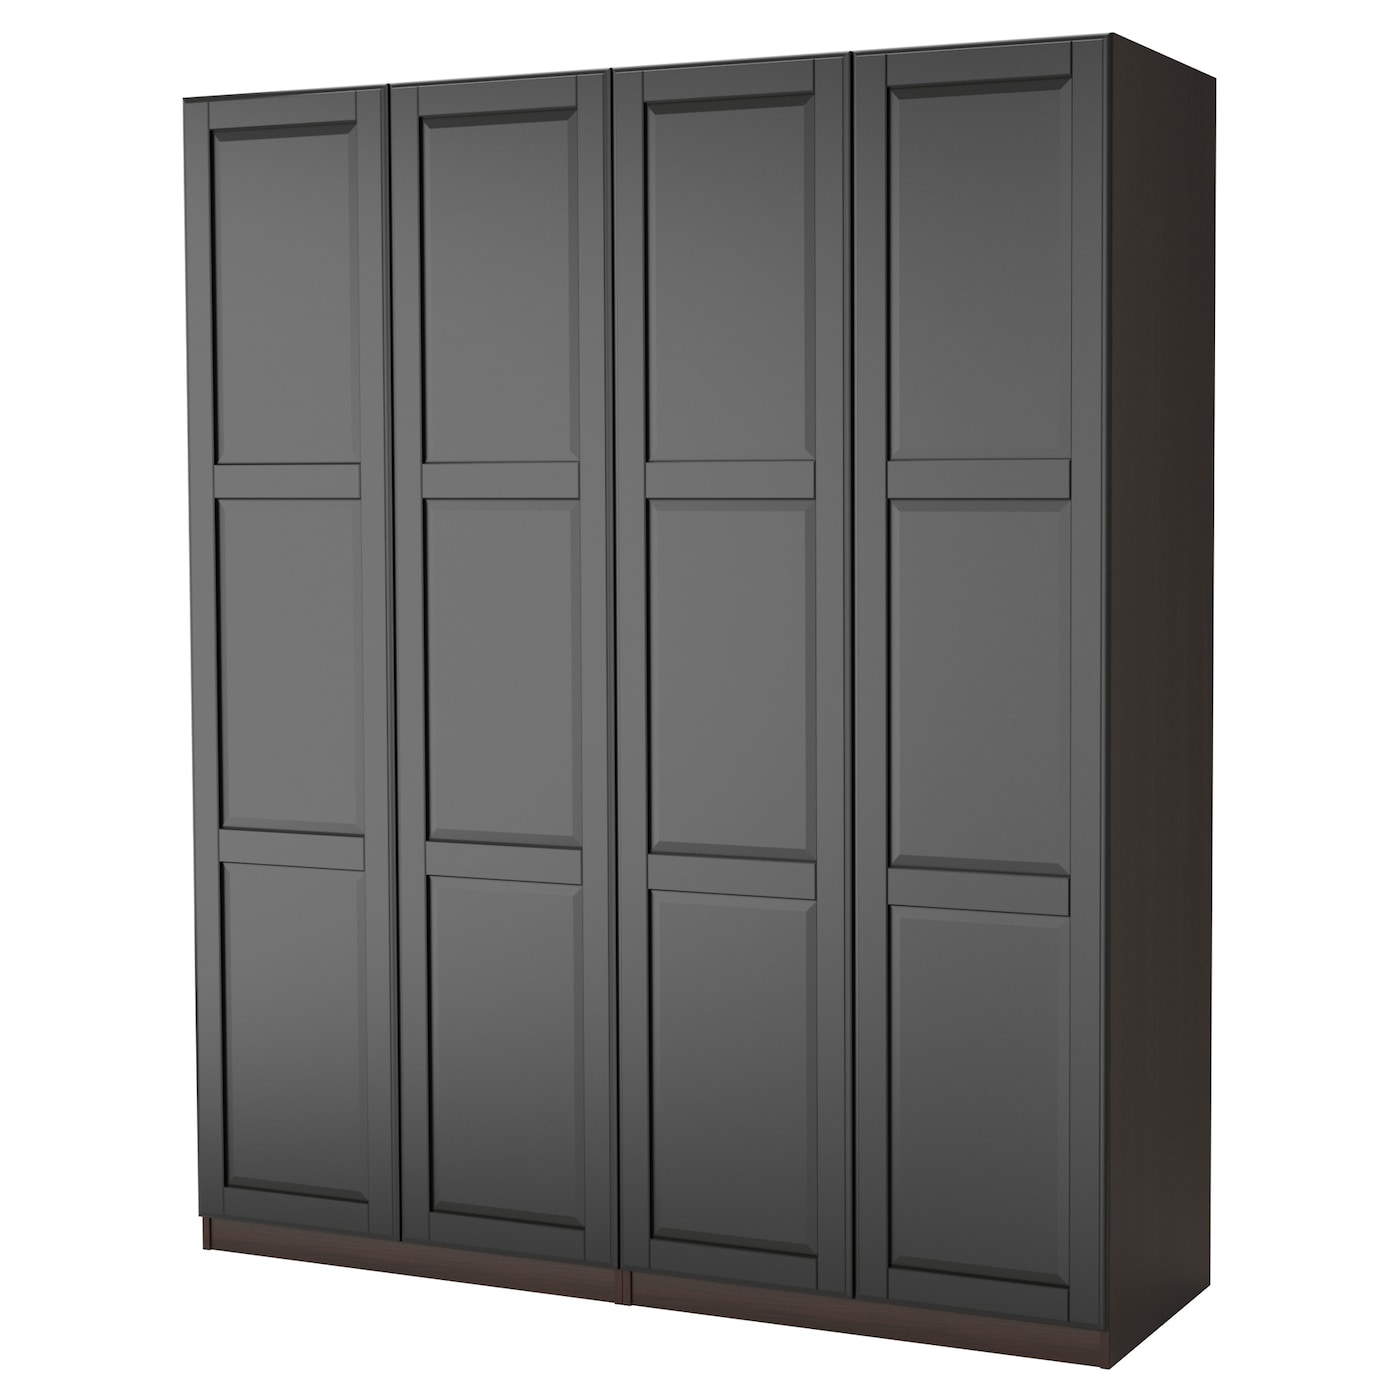 pax armoire penderie brun noir undredal noir 200 x 60 x 201 cm ikea. Black Bedroom Furniture Sets. Home Design Ideas